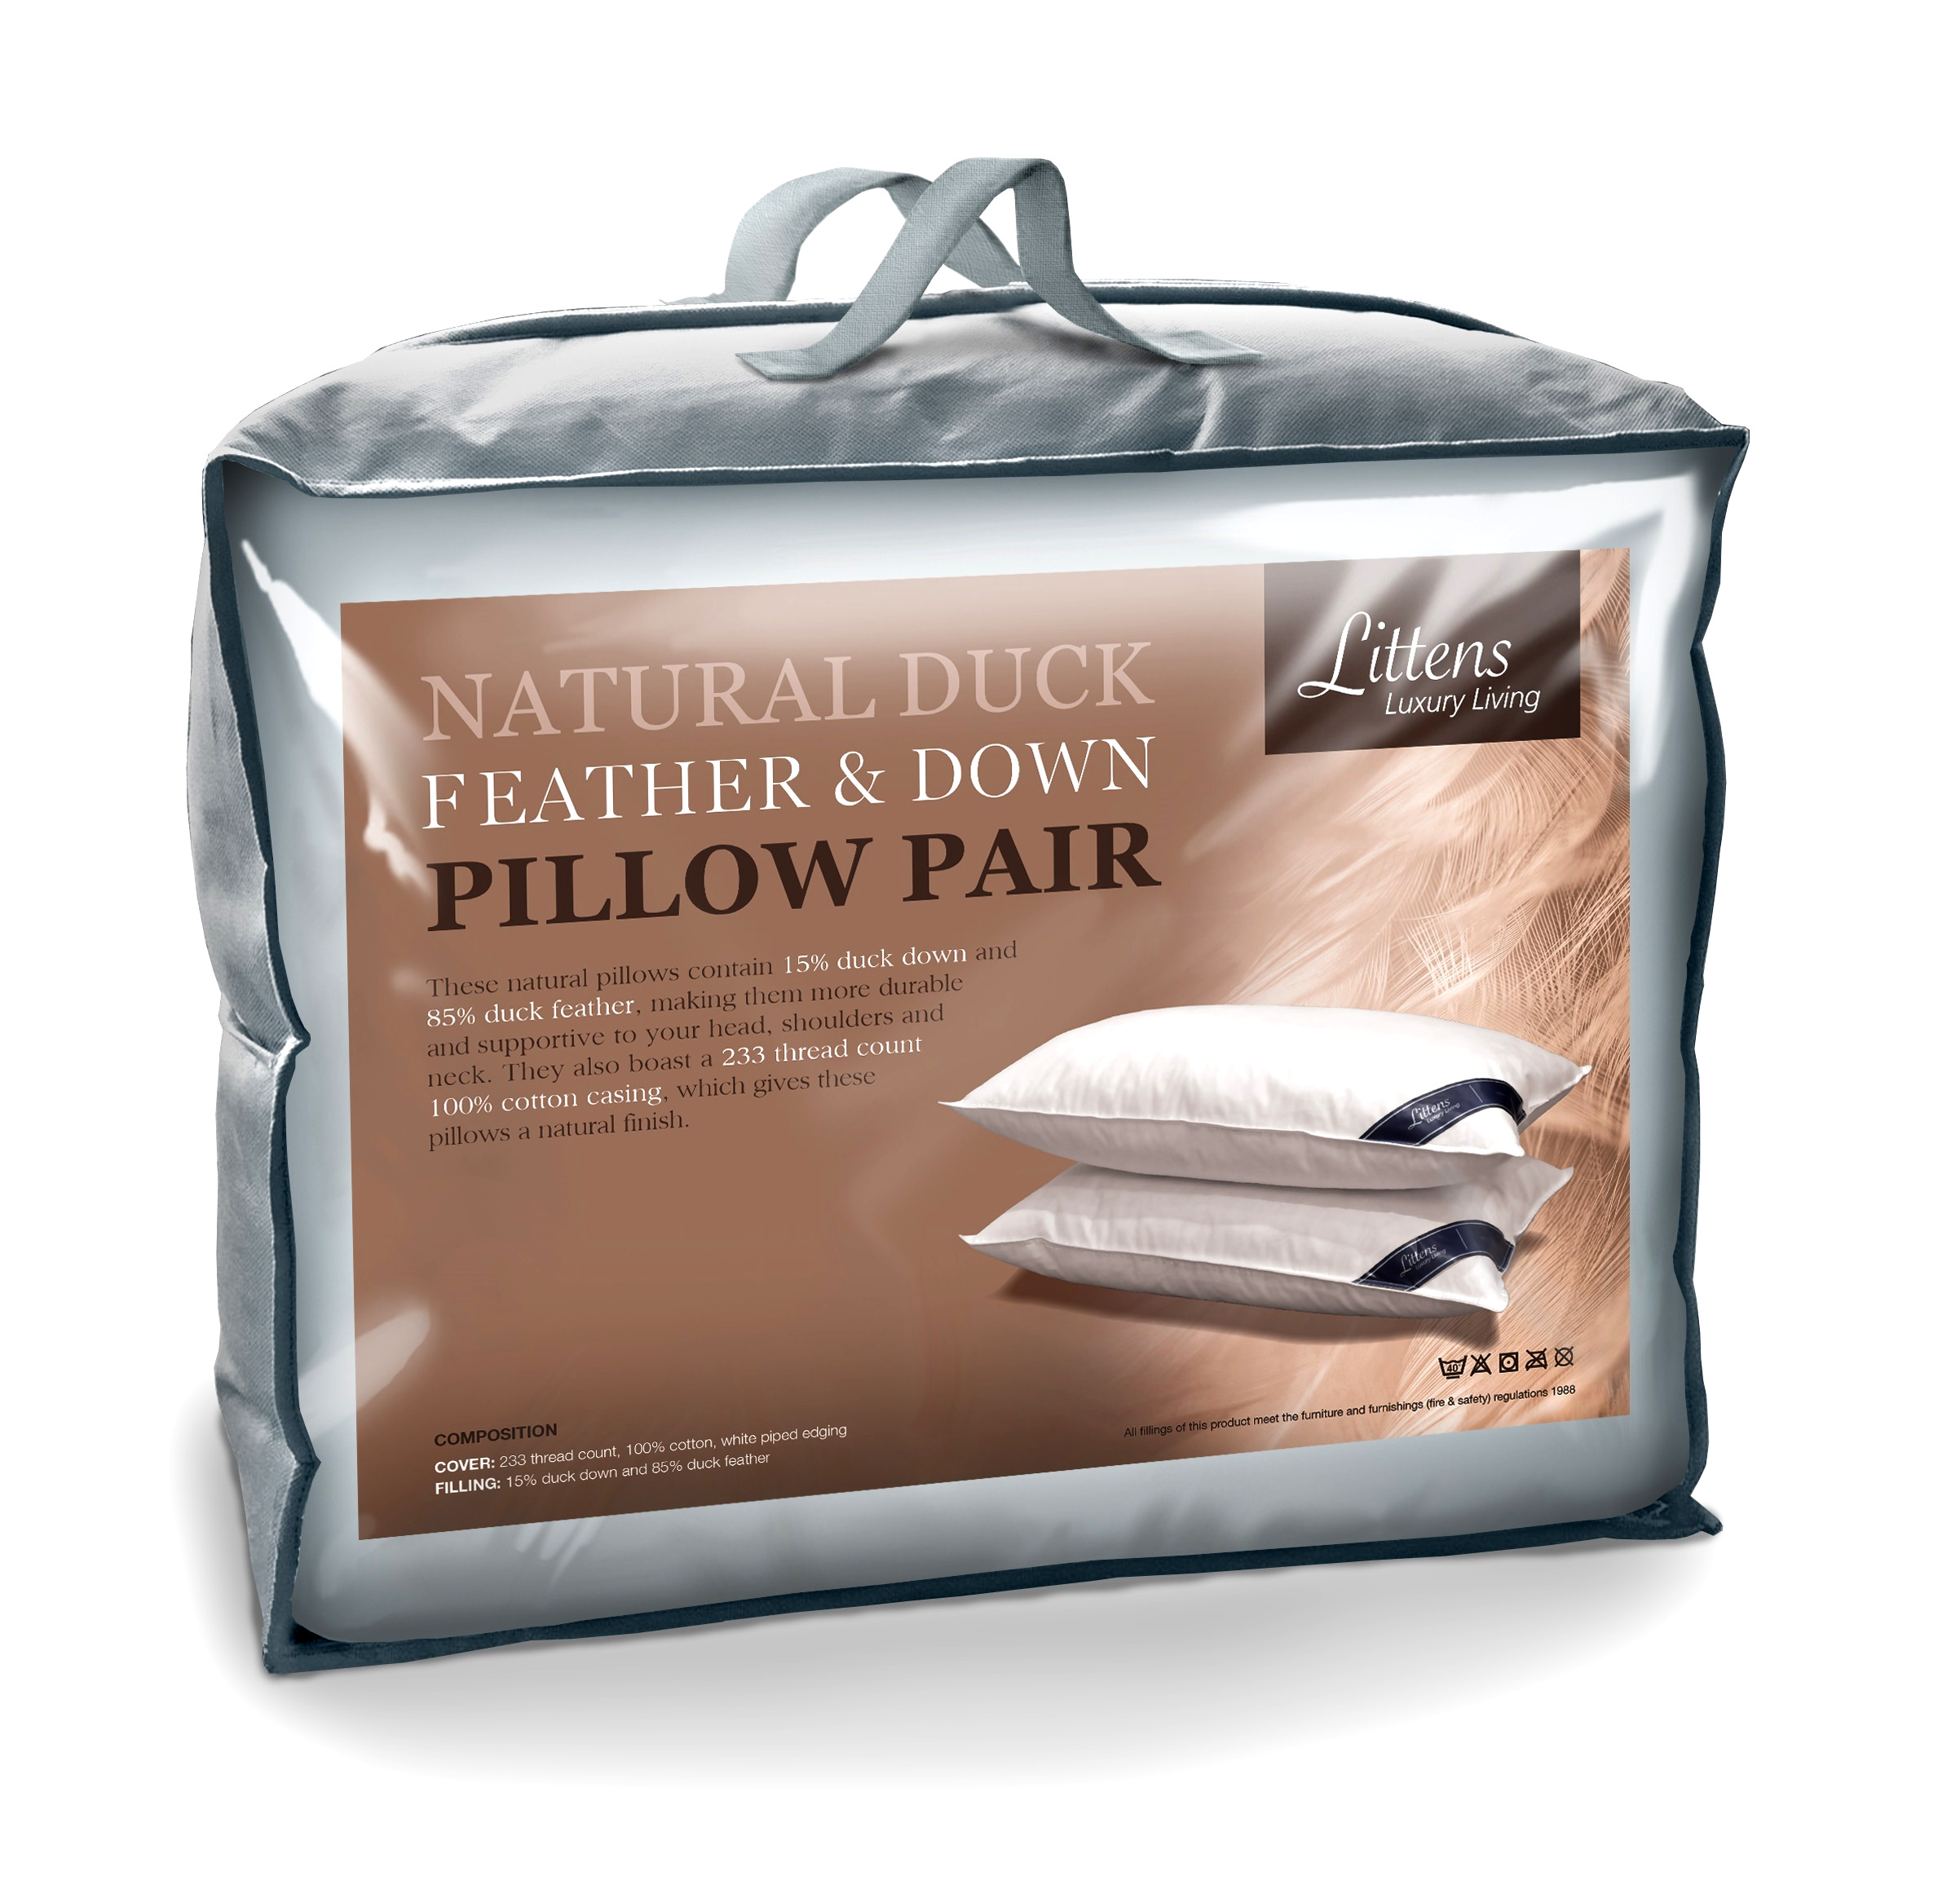 2 x PAIR OF LUXURY DUCK FEATHER AND DOWN PILLOWS 85/% DUCK AND 15/% DOWN